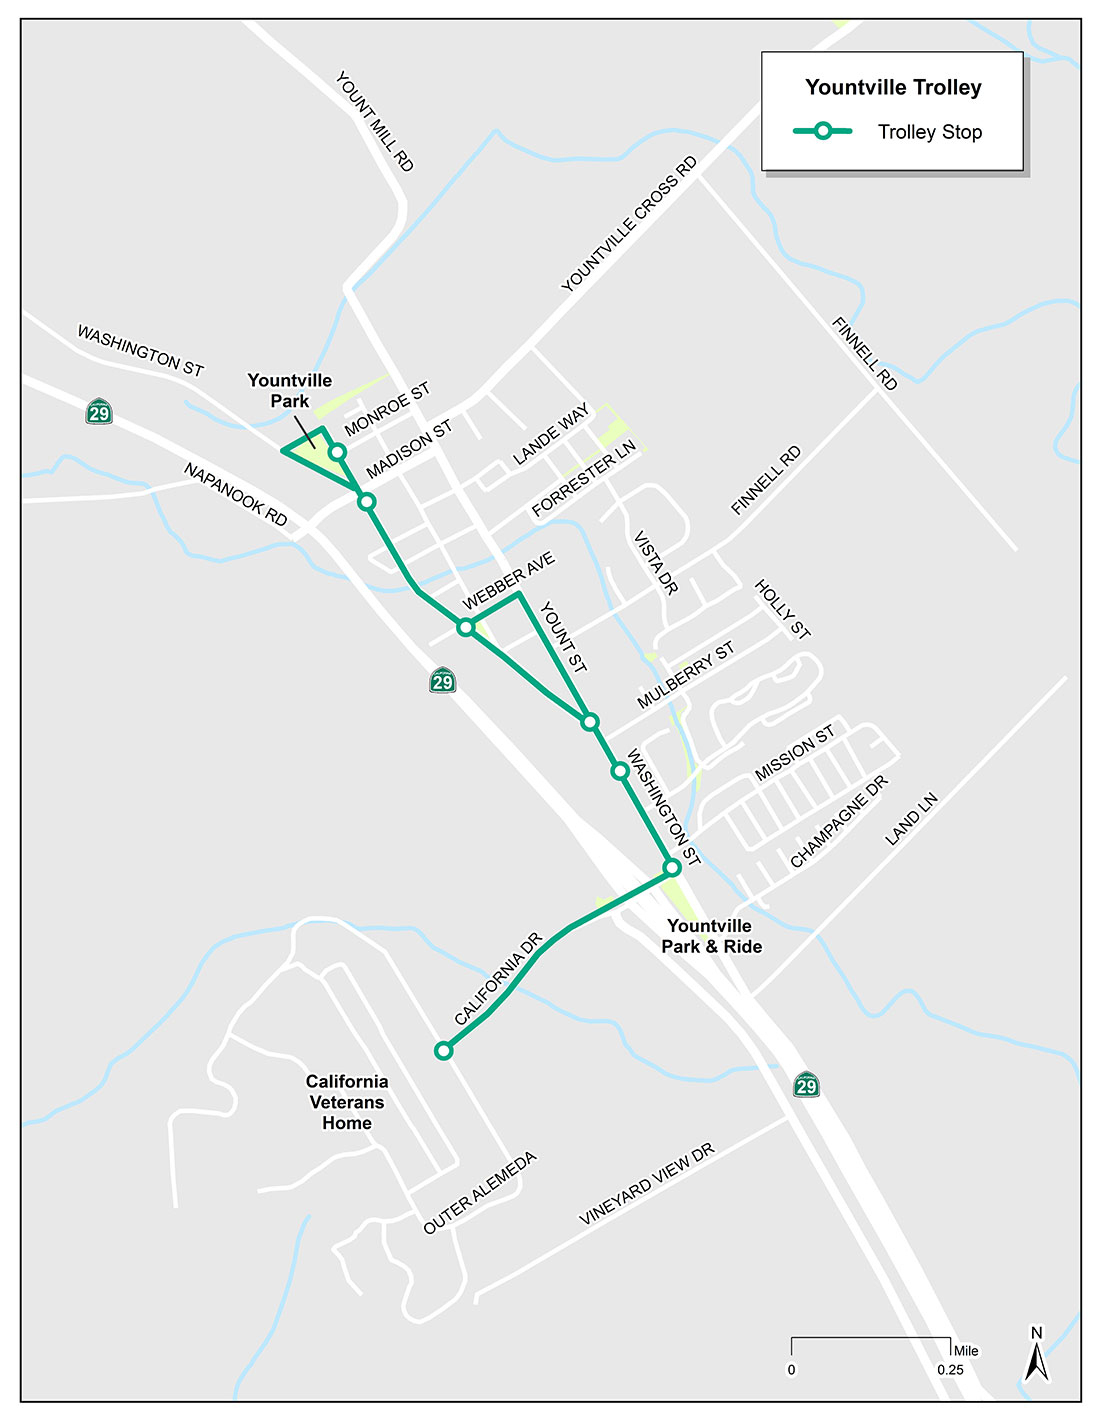 Yountville Trolley Maps Of California Where Is Yountville California - Where Is Yountville California On The Map